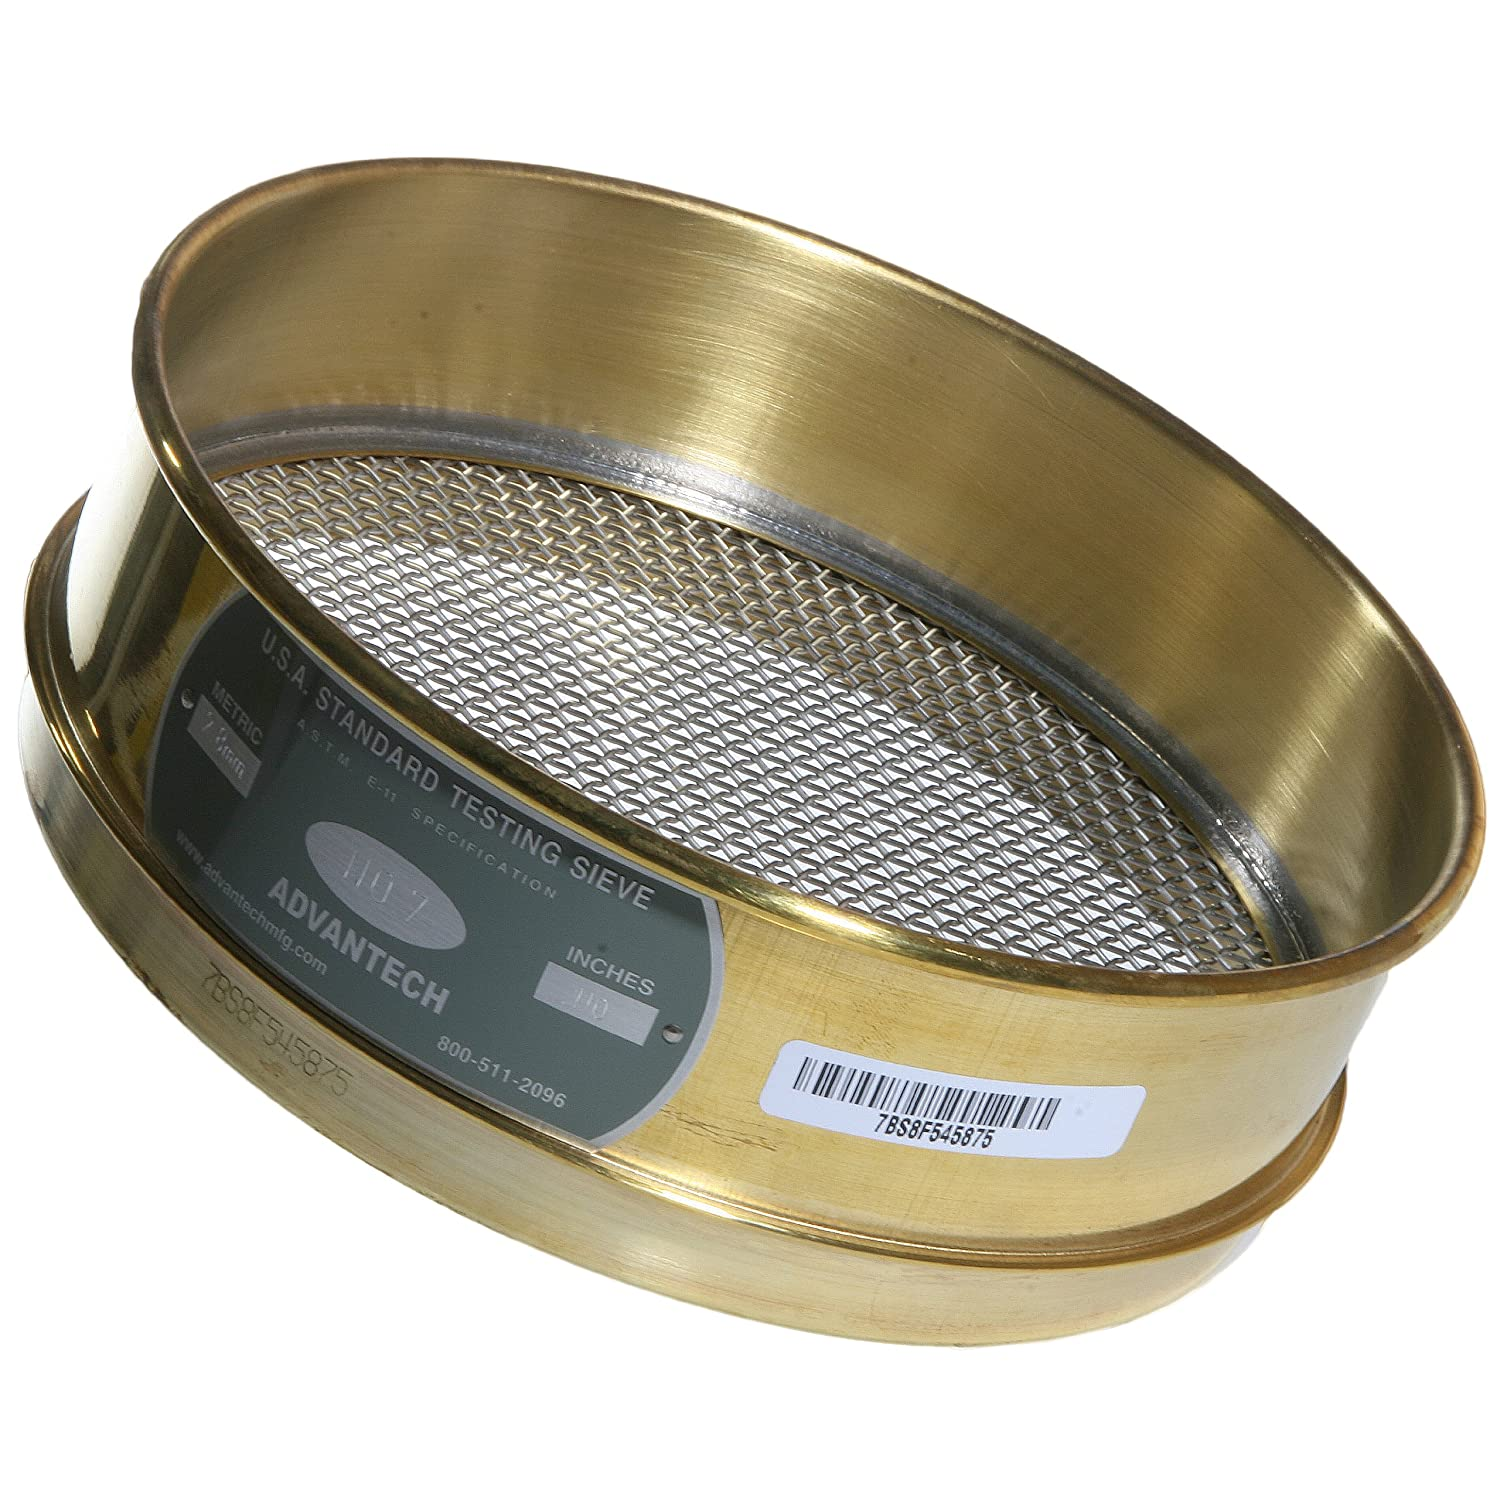 Advantech Brass Test Sieves, 8' Diameter, #7 Mesh, Full Height 8 Diameter ADV-7BS8F